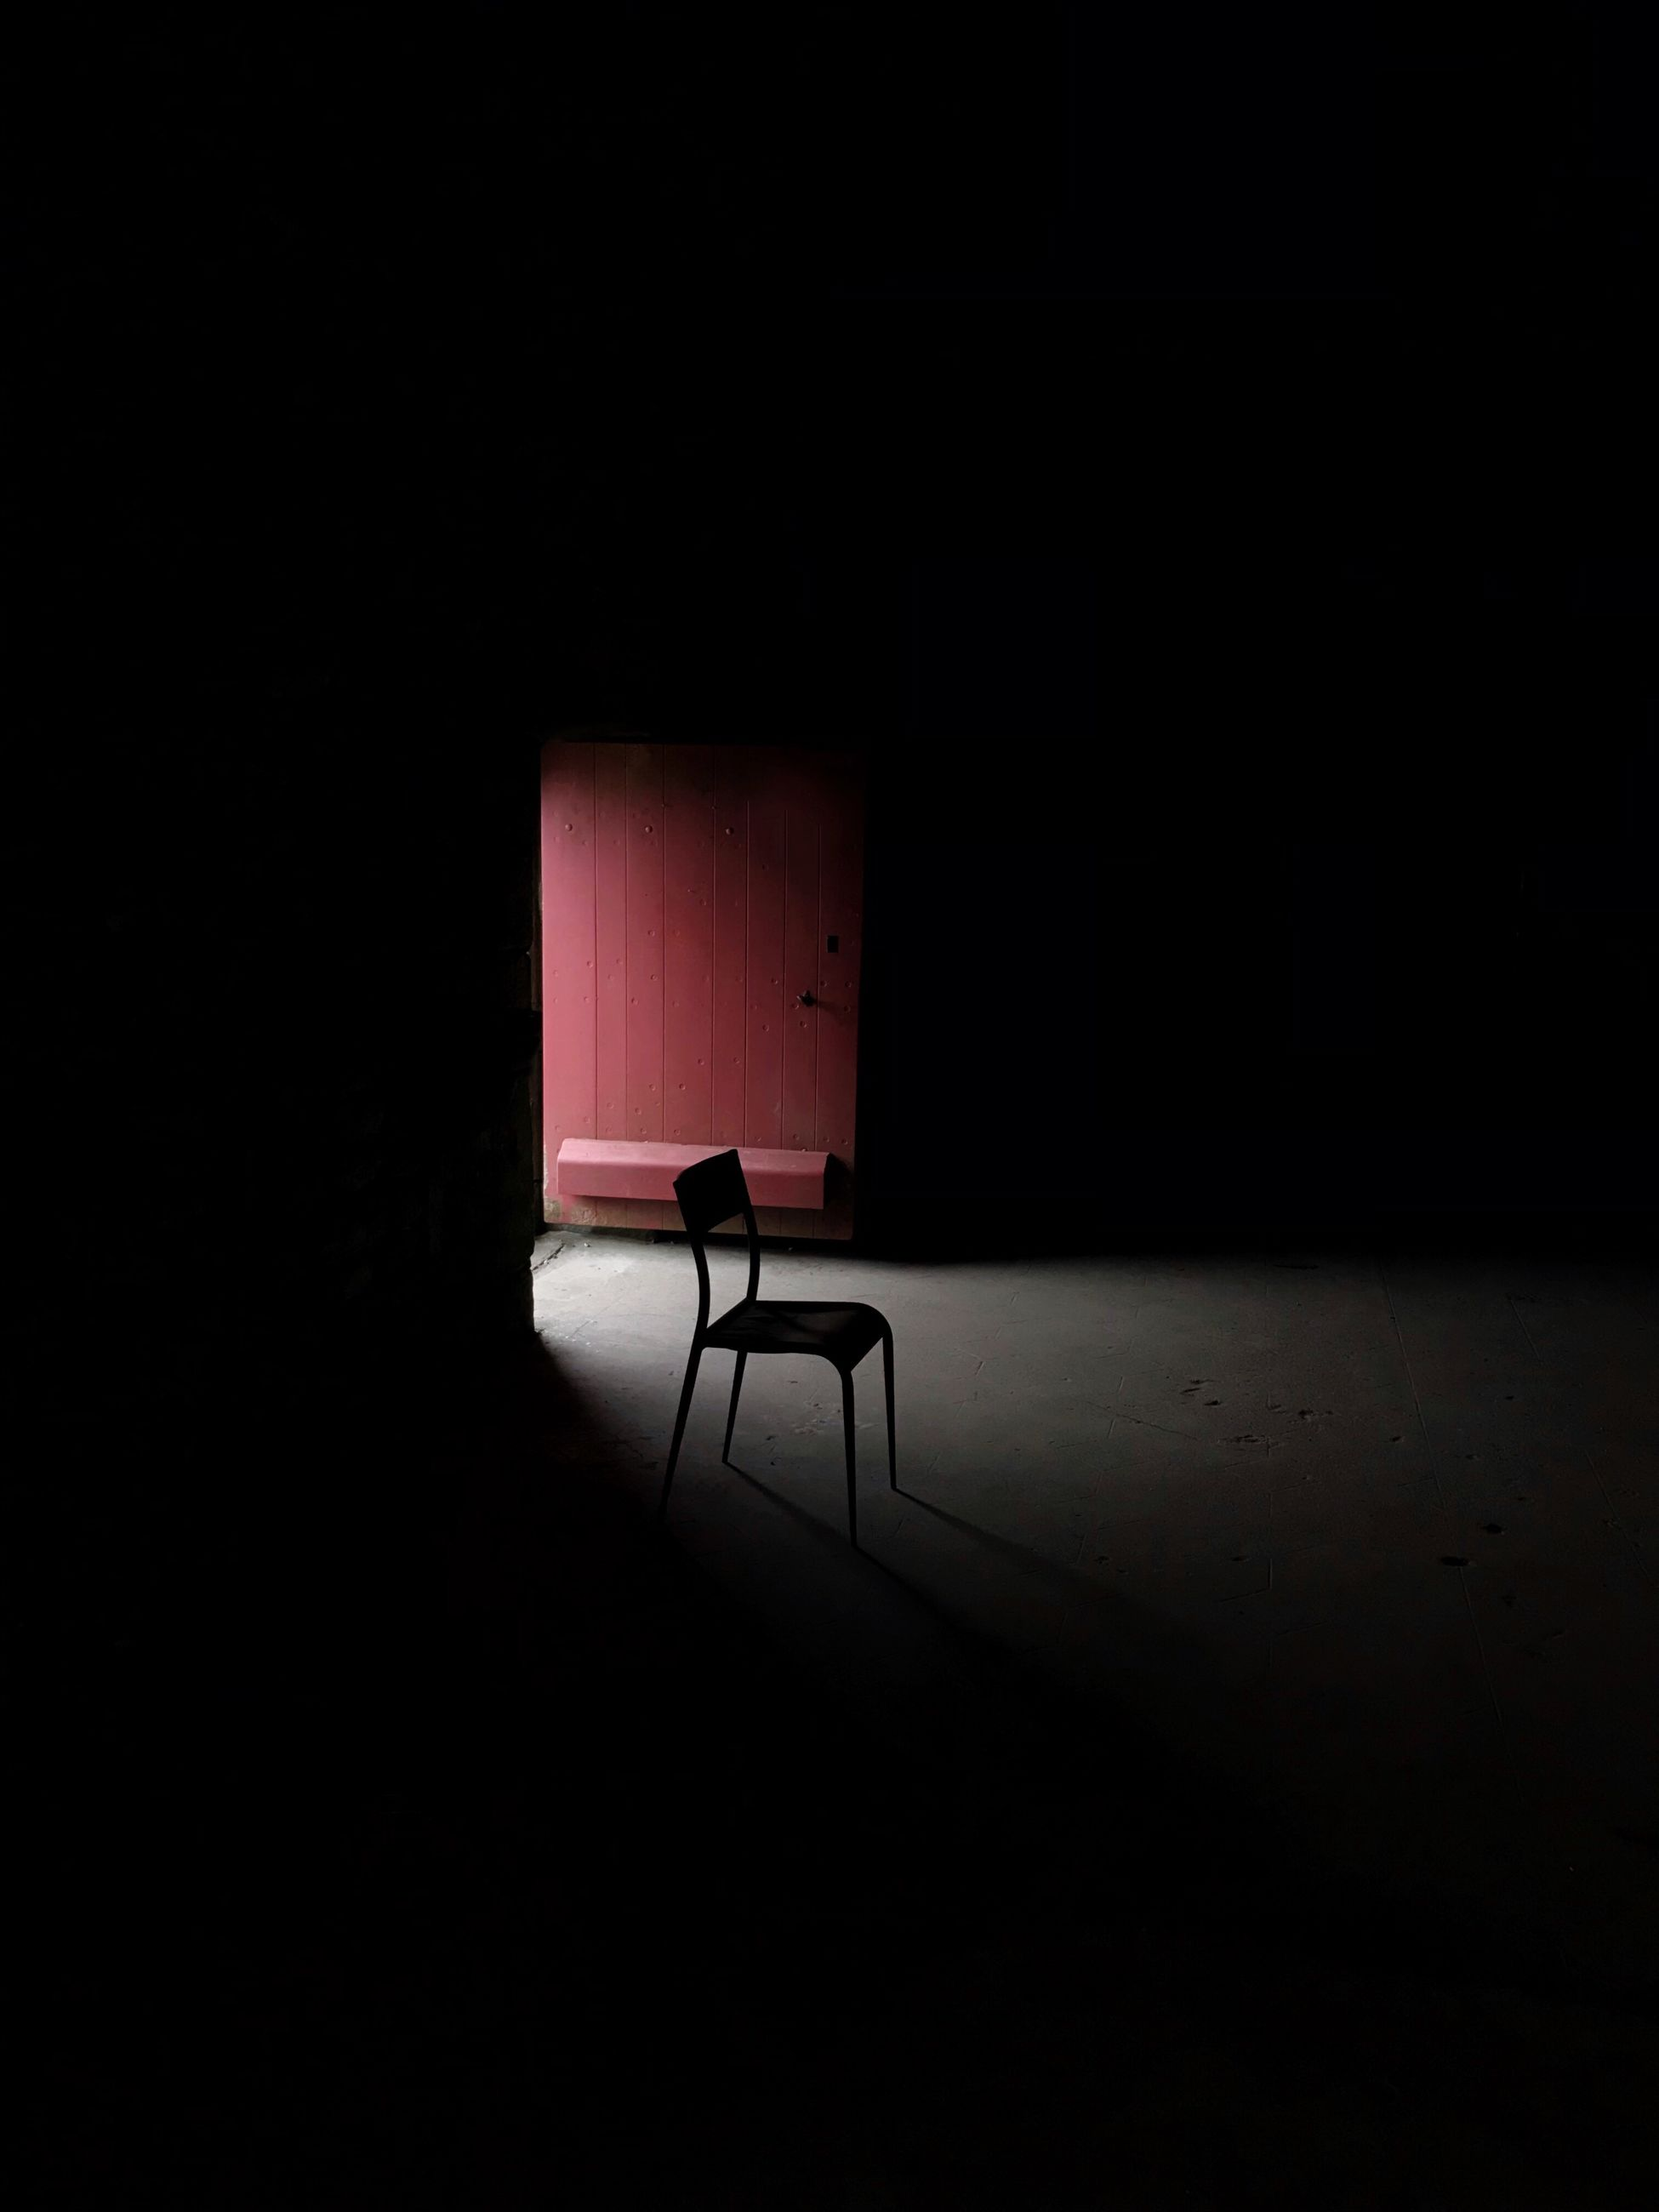 seat, absence, chair, dark, empty, indoors, no people, domestic room, copy space, shadow, spotlight, abandoned, spooky, darkroom, architecture, stage - performance space, solitude, furniture, stage